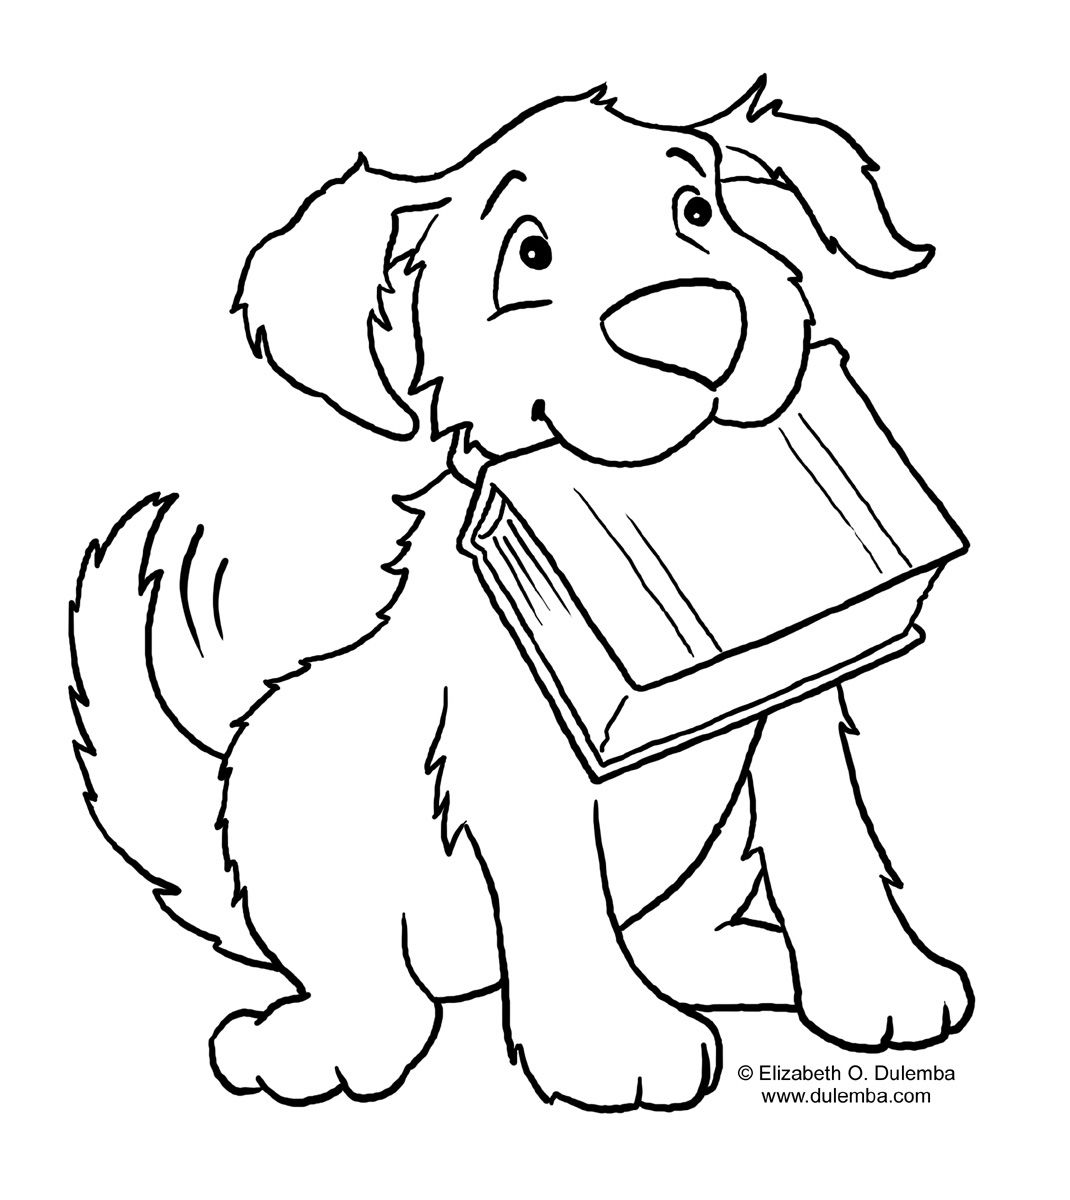 Dogs printable coloring pages for kids. Find on coloring-book of ...